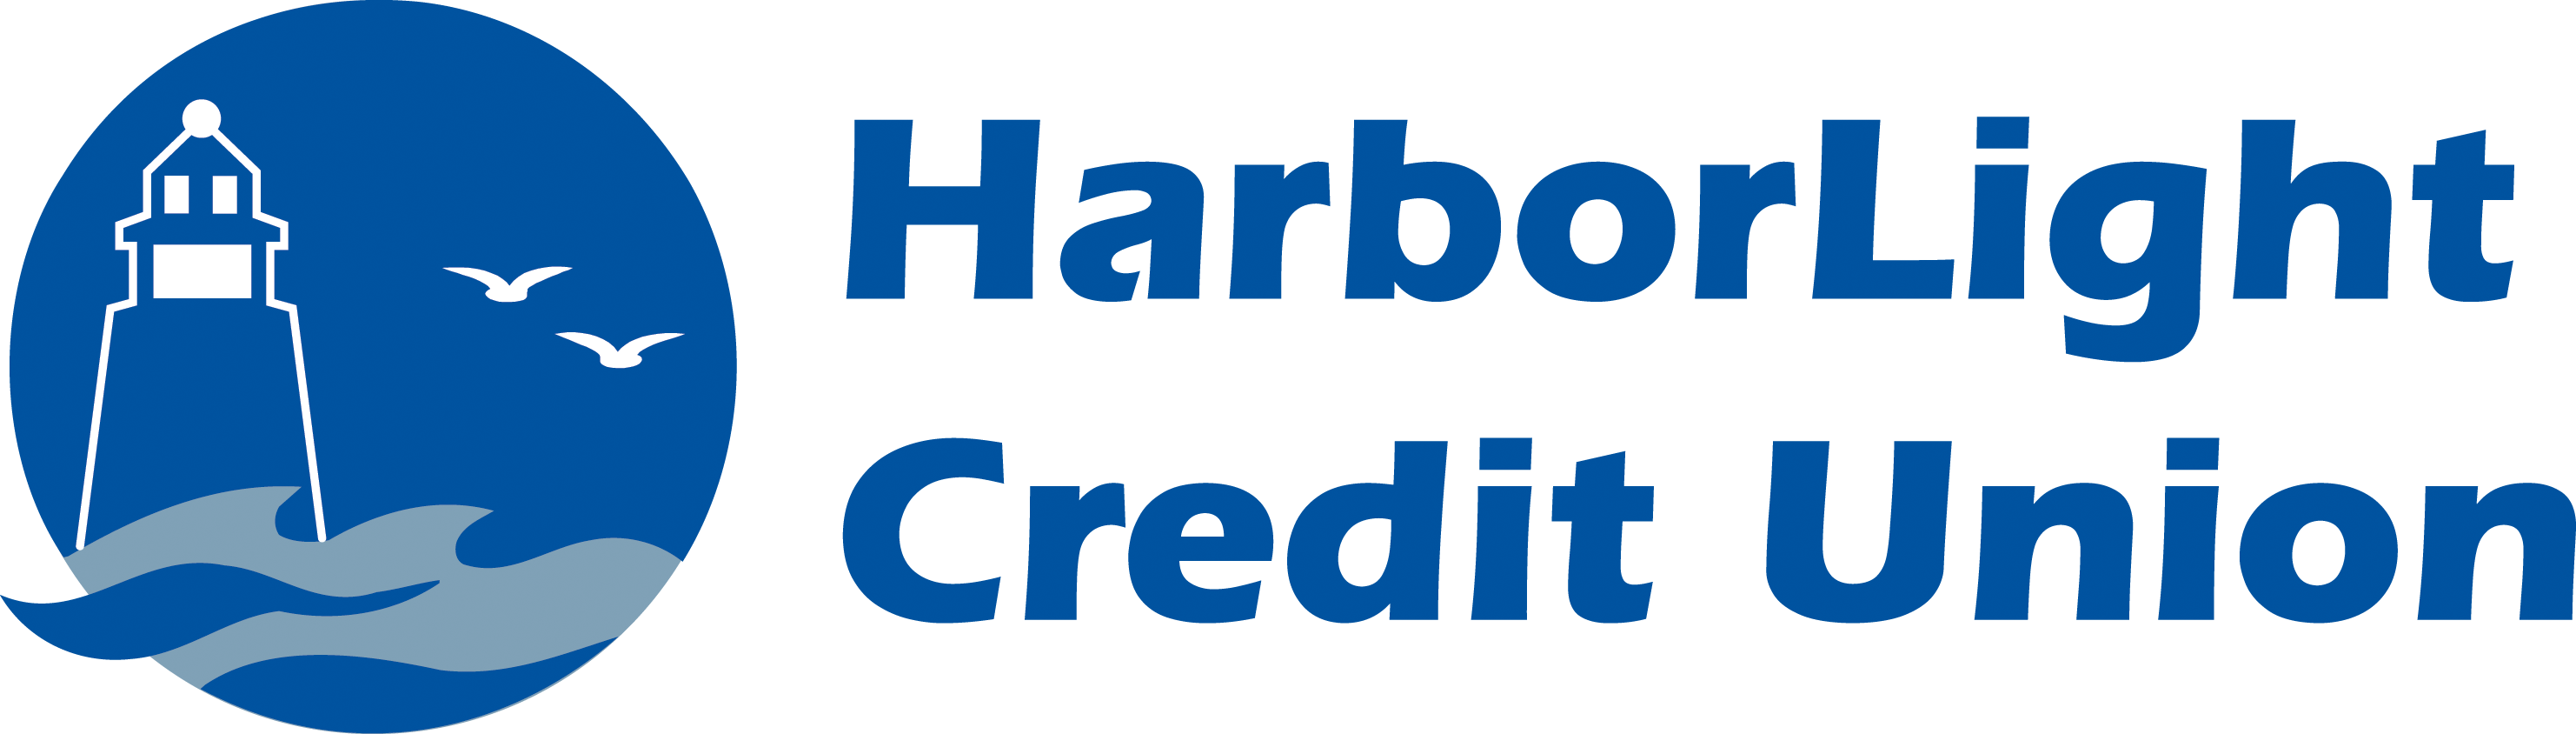 HarborLight Credit Union